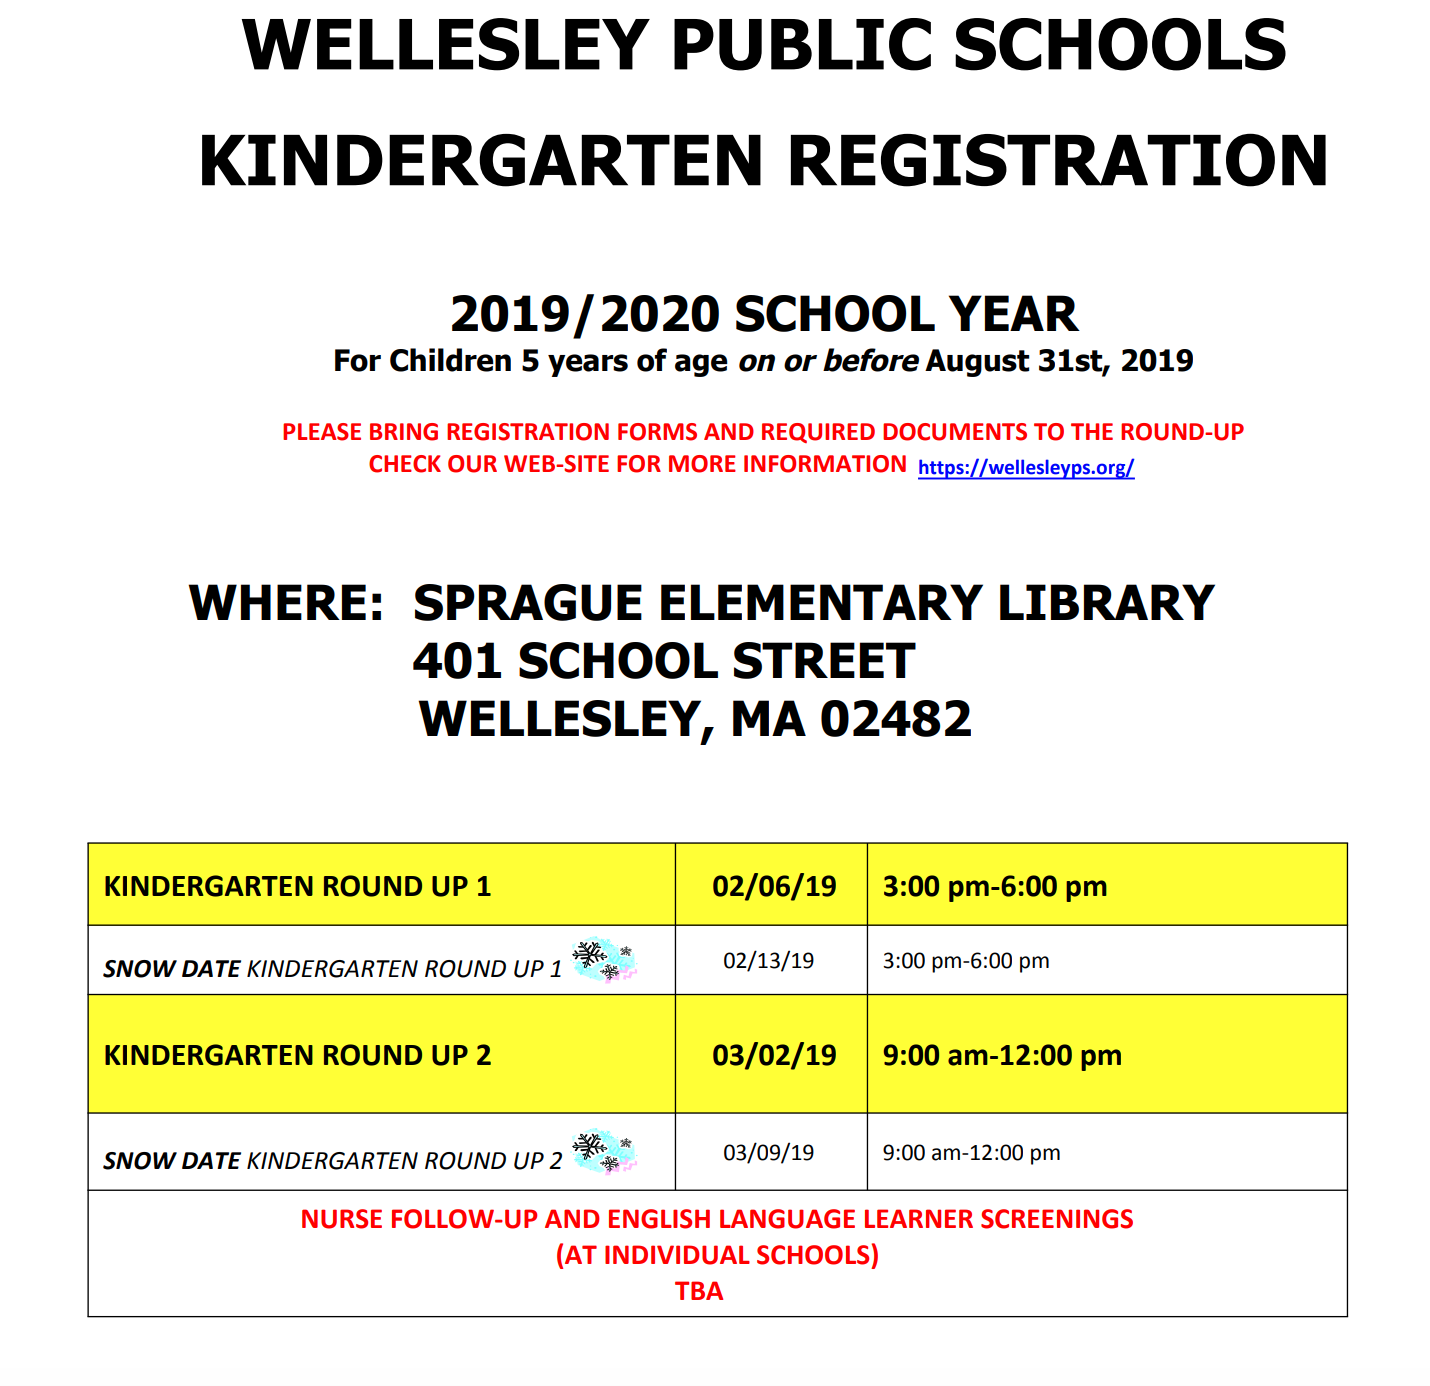 Wellesley kindergarten